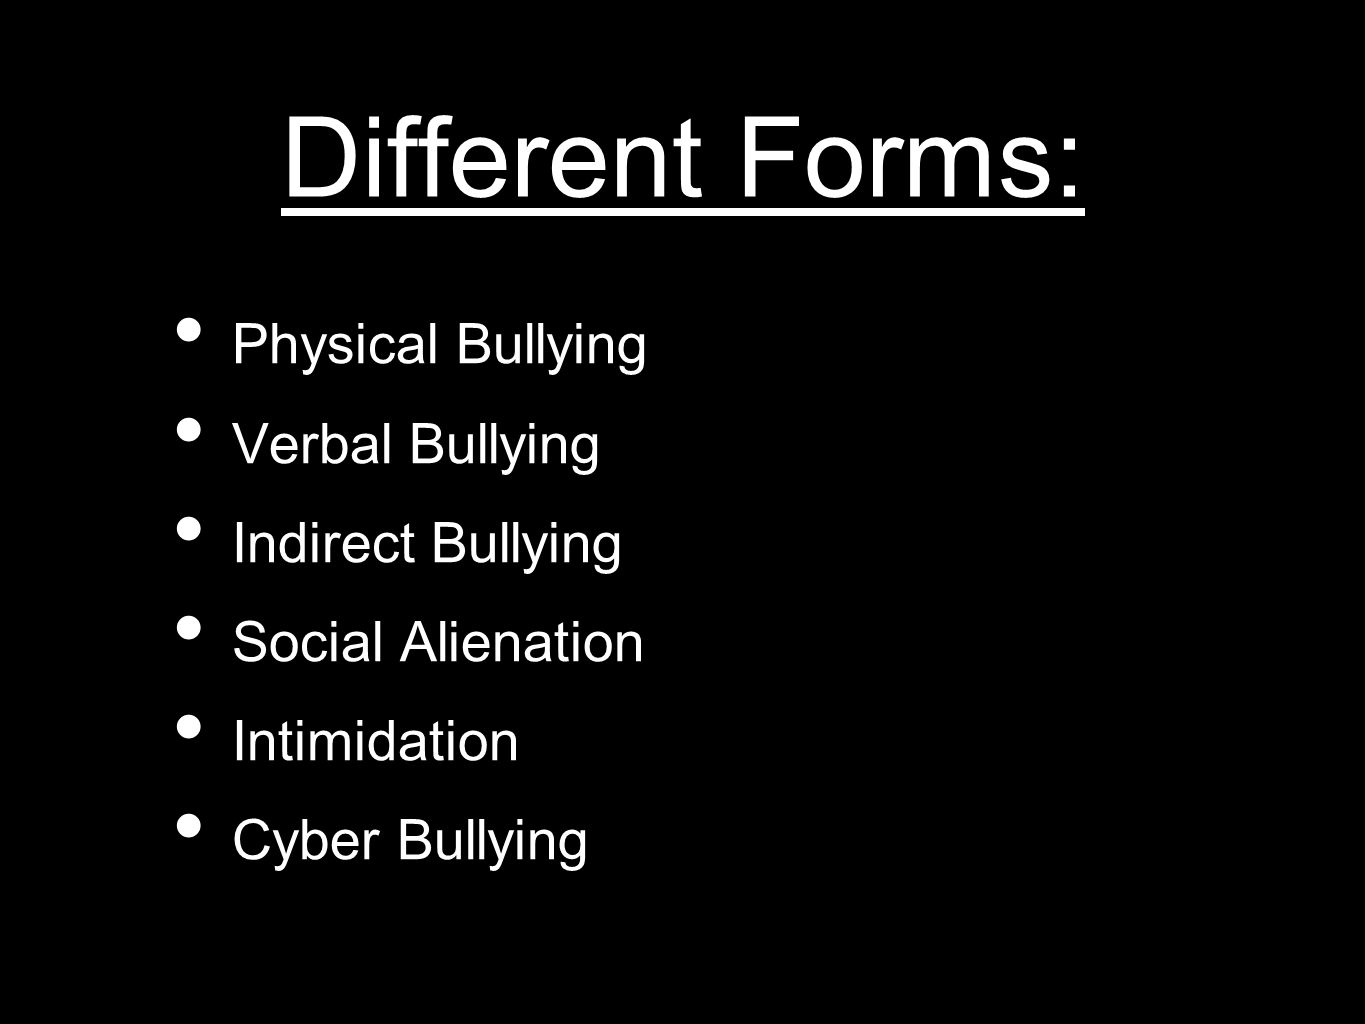 Different Forms: Physical Bullying Verbal Bullying Indirect Bullying Social Alienation Intimidation Cyber Bullying